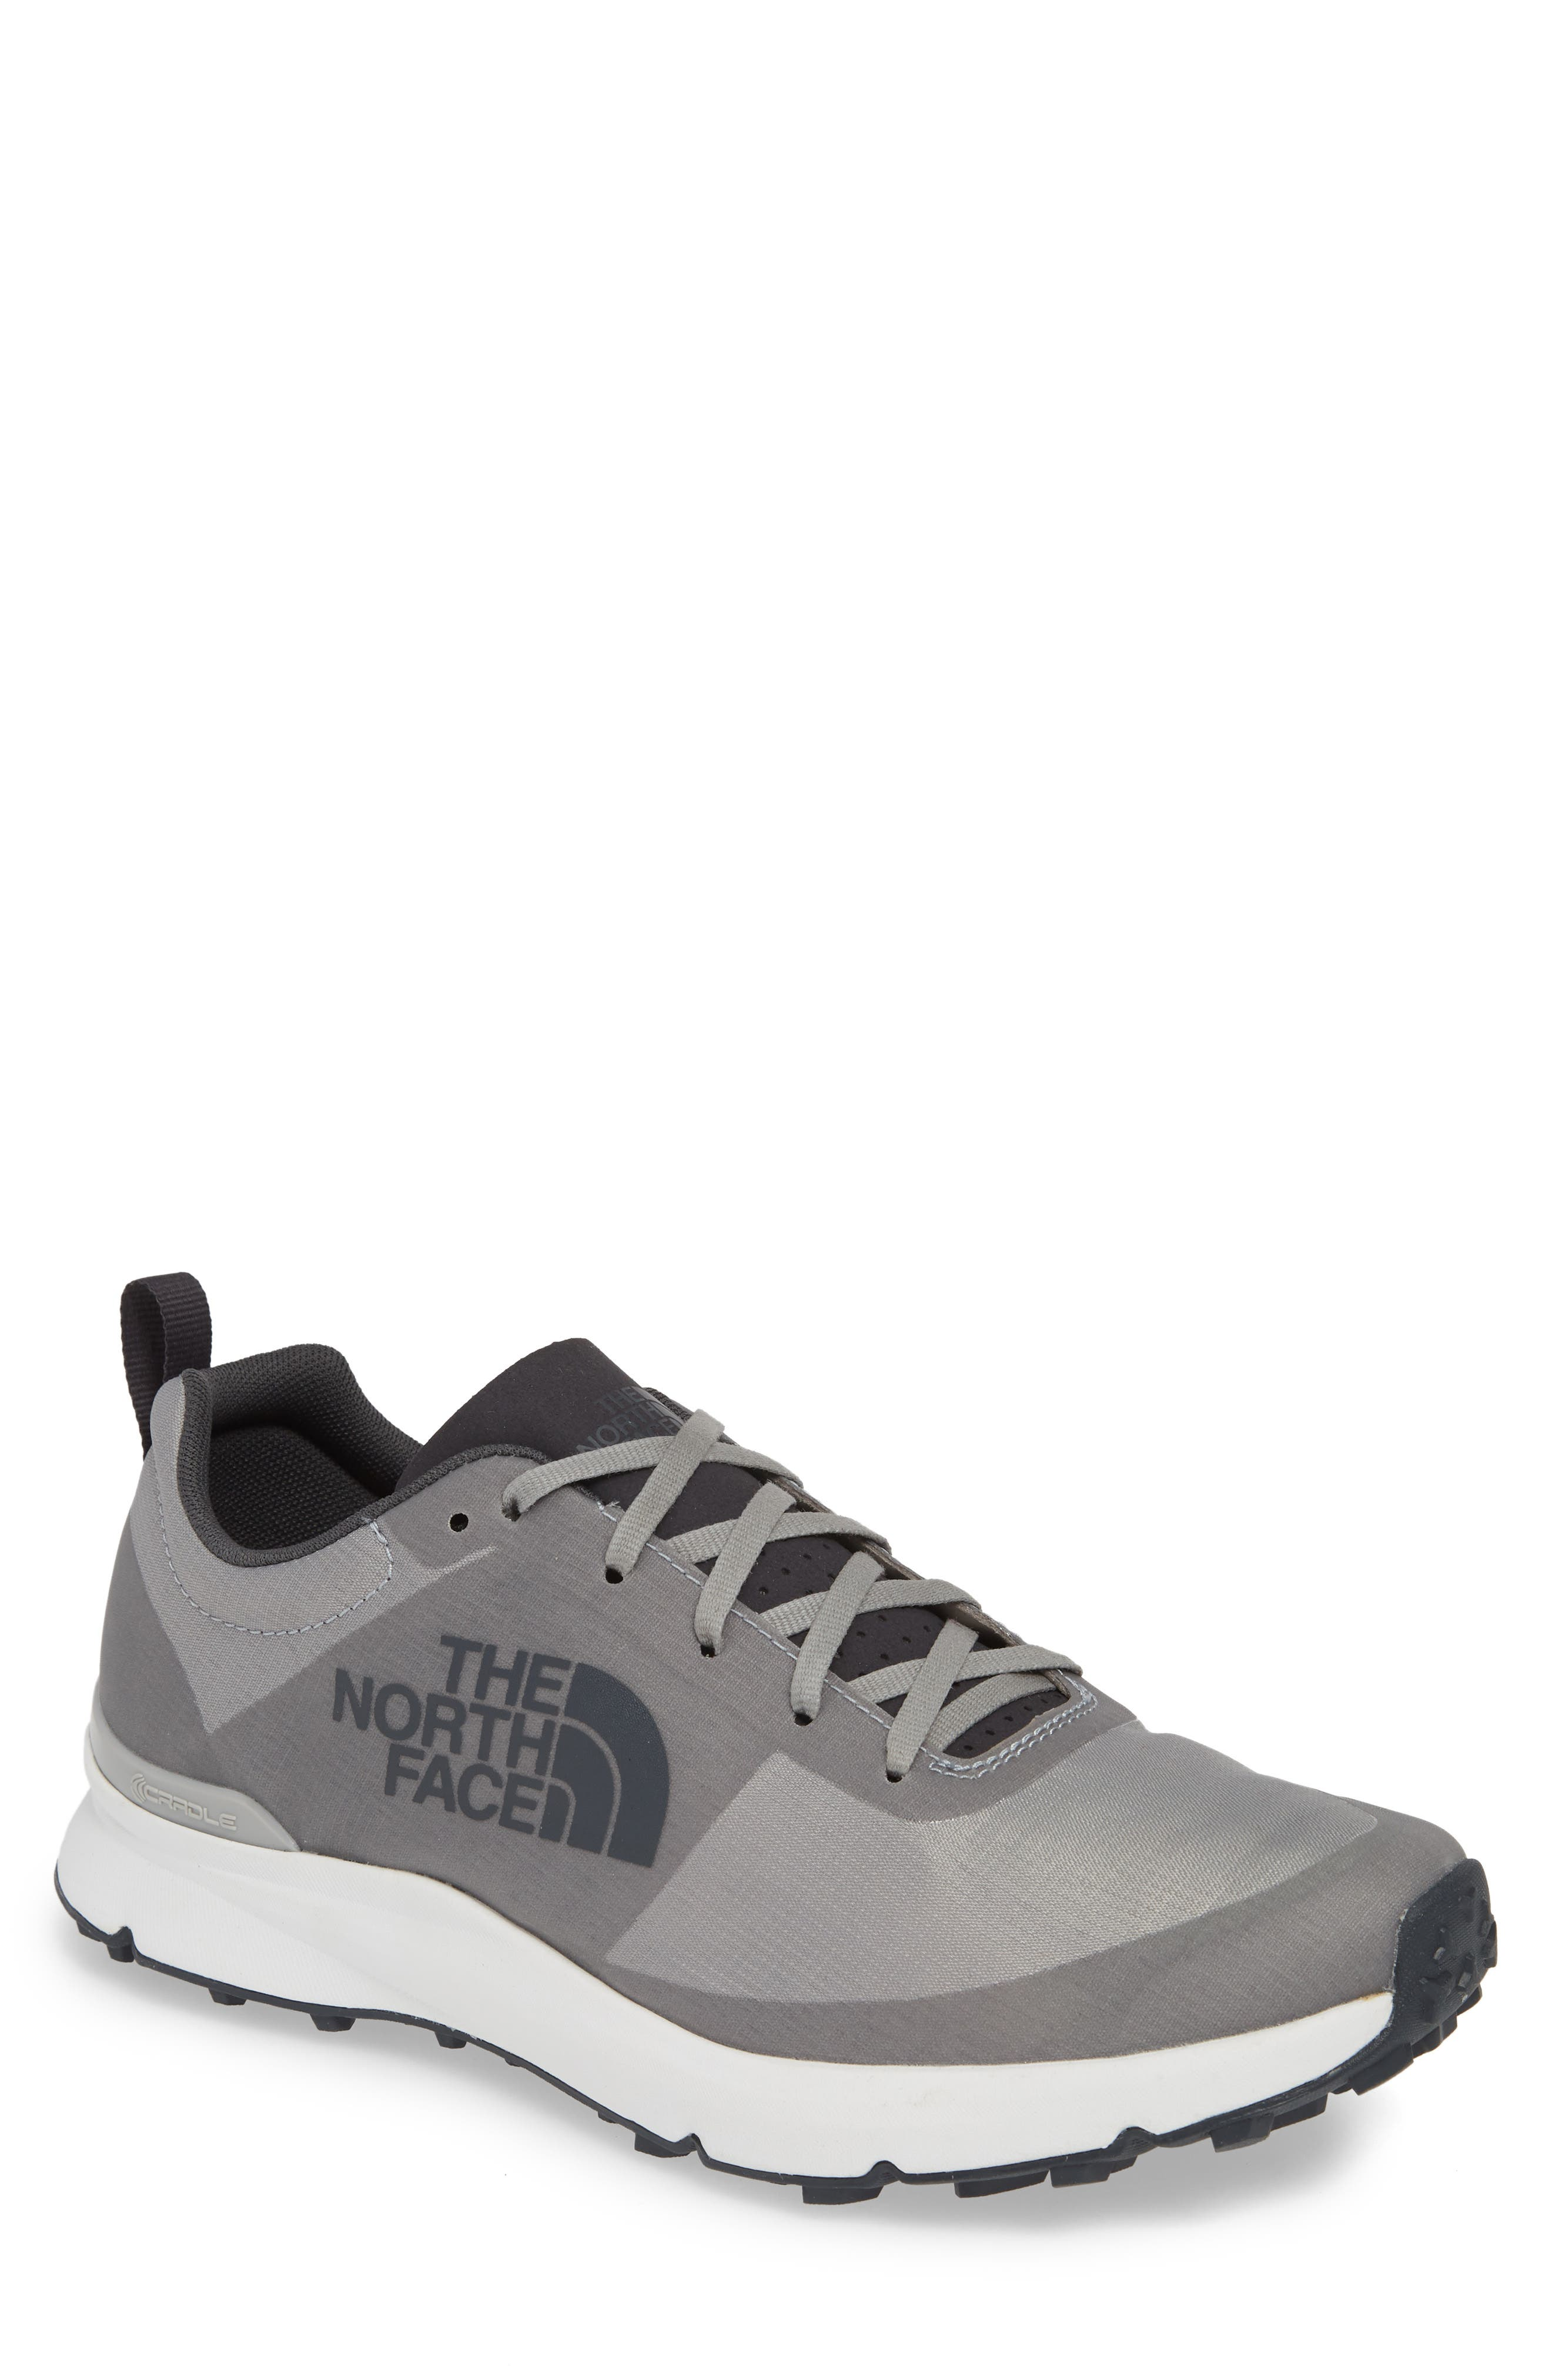 The North Face Milan Hiking Sneaker- Grey